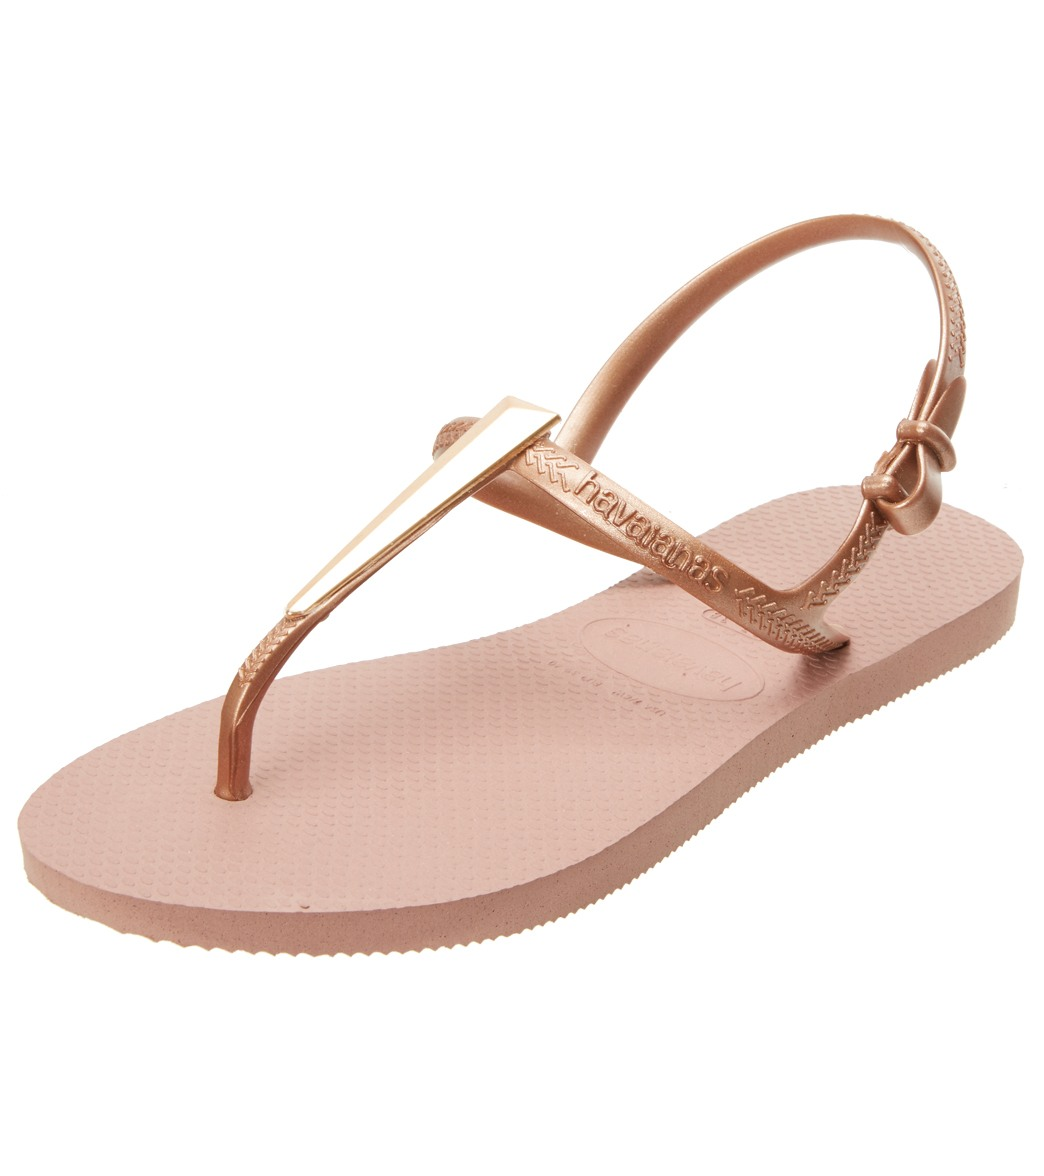 4d30574e76014f Havaianas Women s Freedom Slim Maxi Sandal at SwimOutlet.com